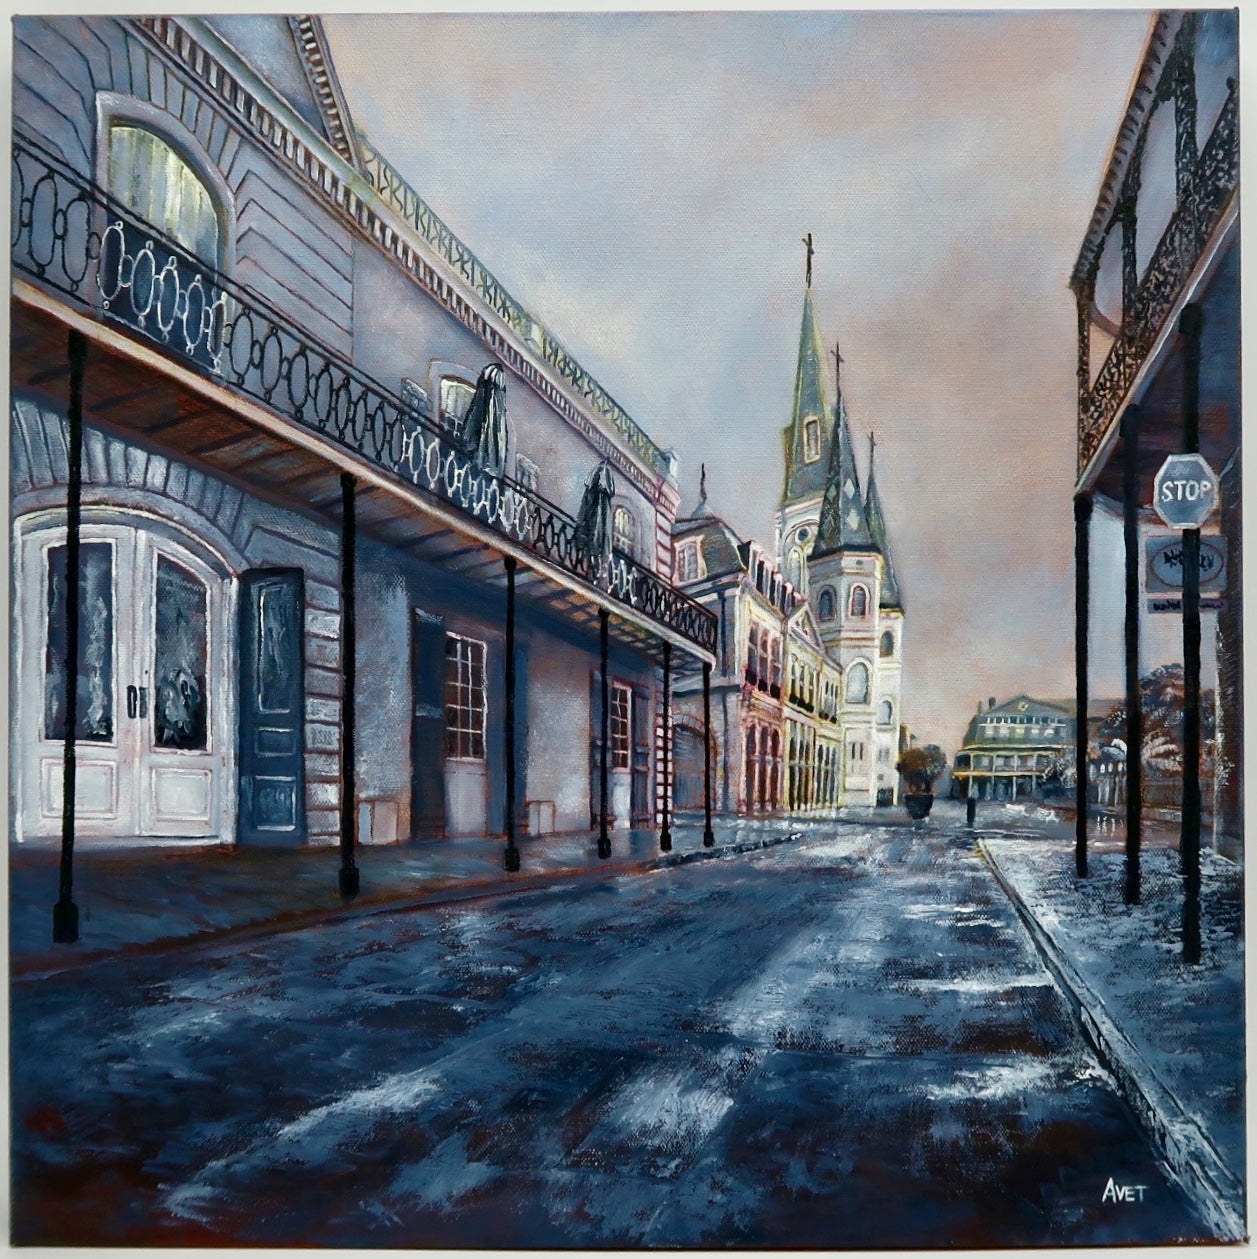 """Chartres Street"" by Nicolas Avet"